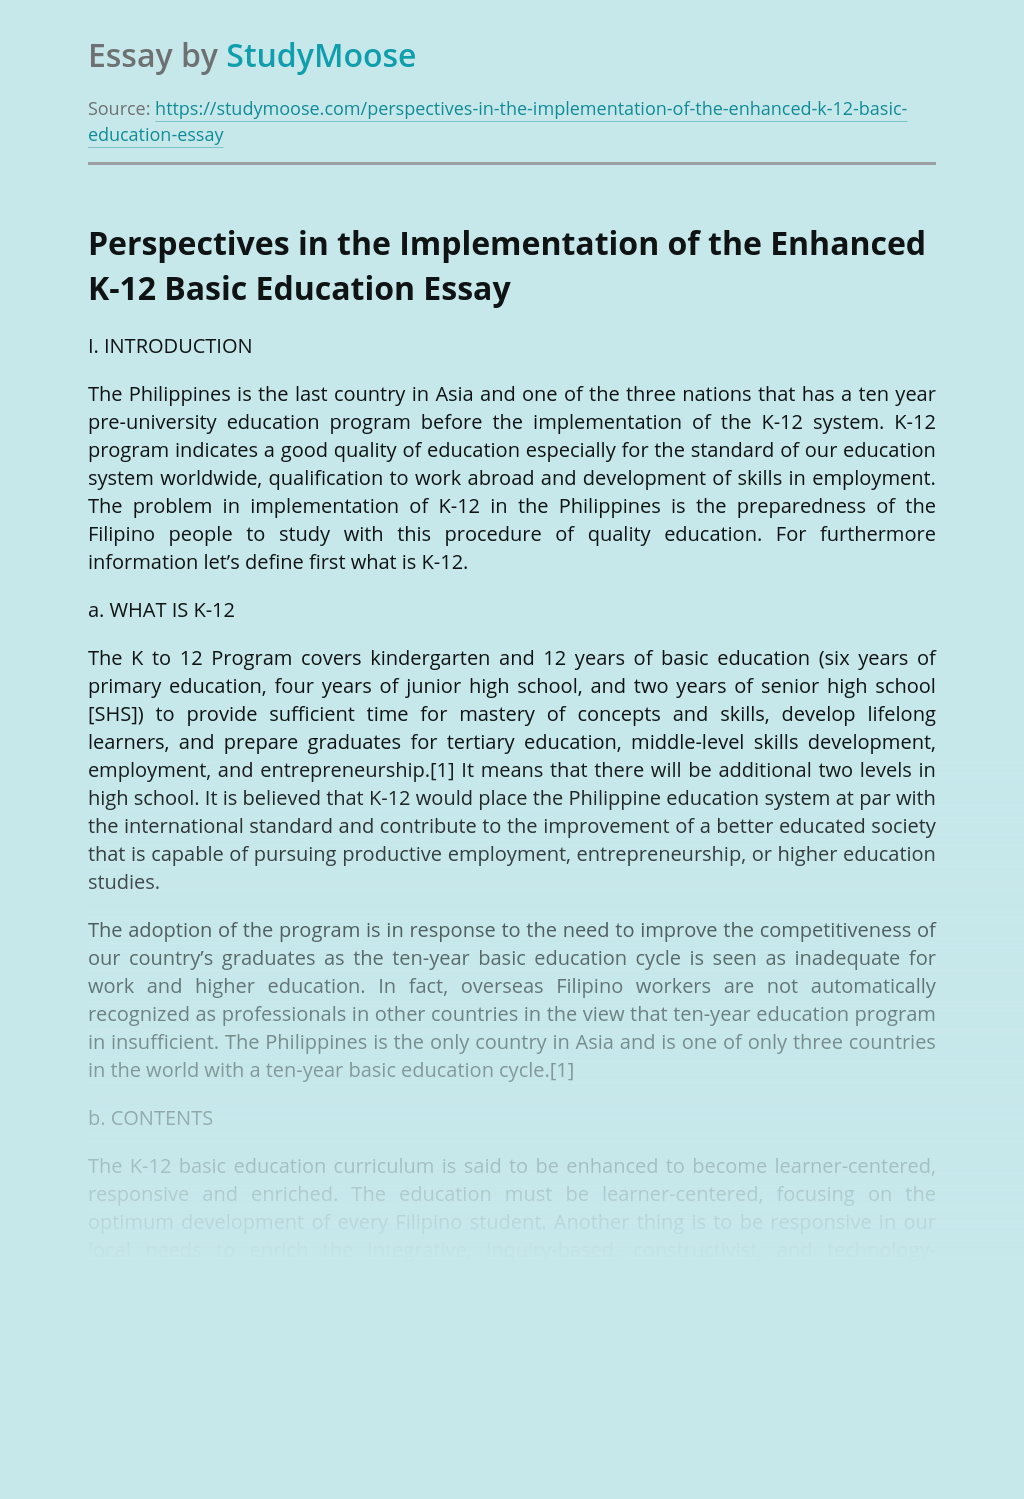 Perspectives in the Implementation of the Enhanced K-12 Basic Education